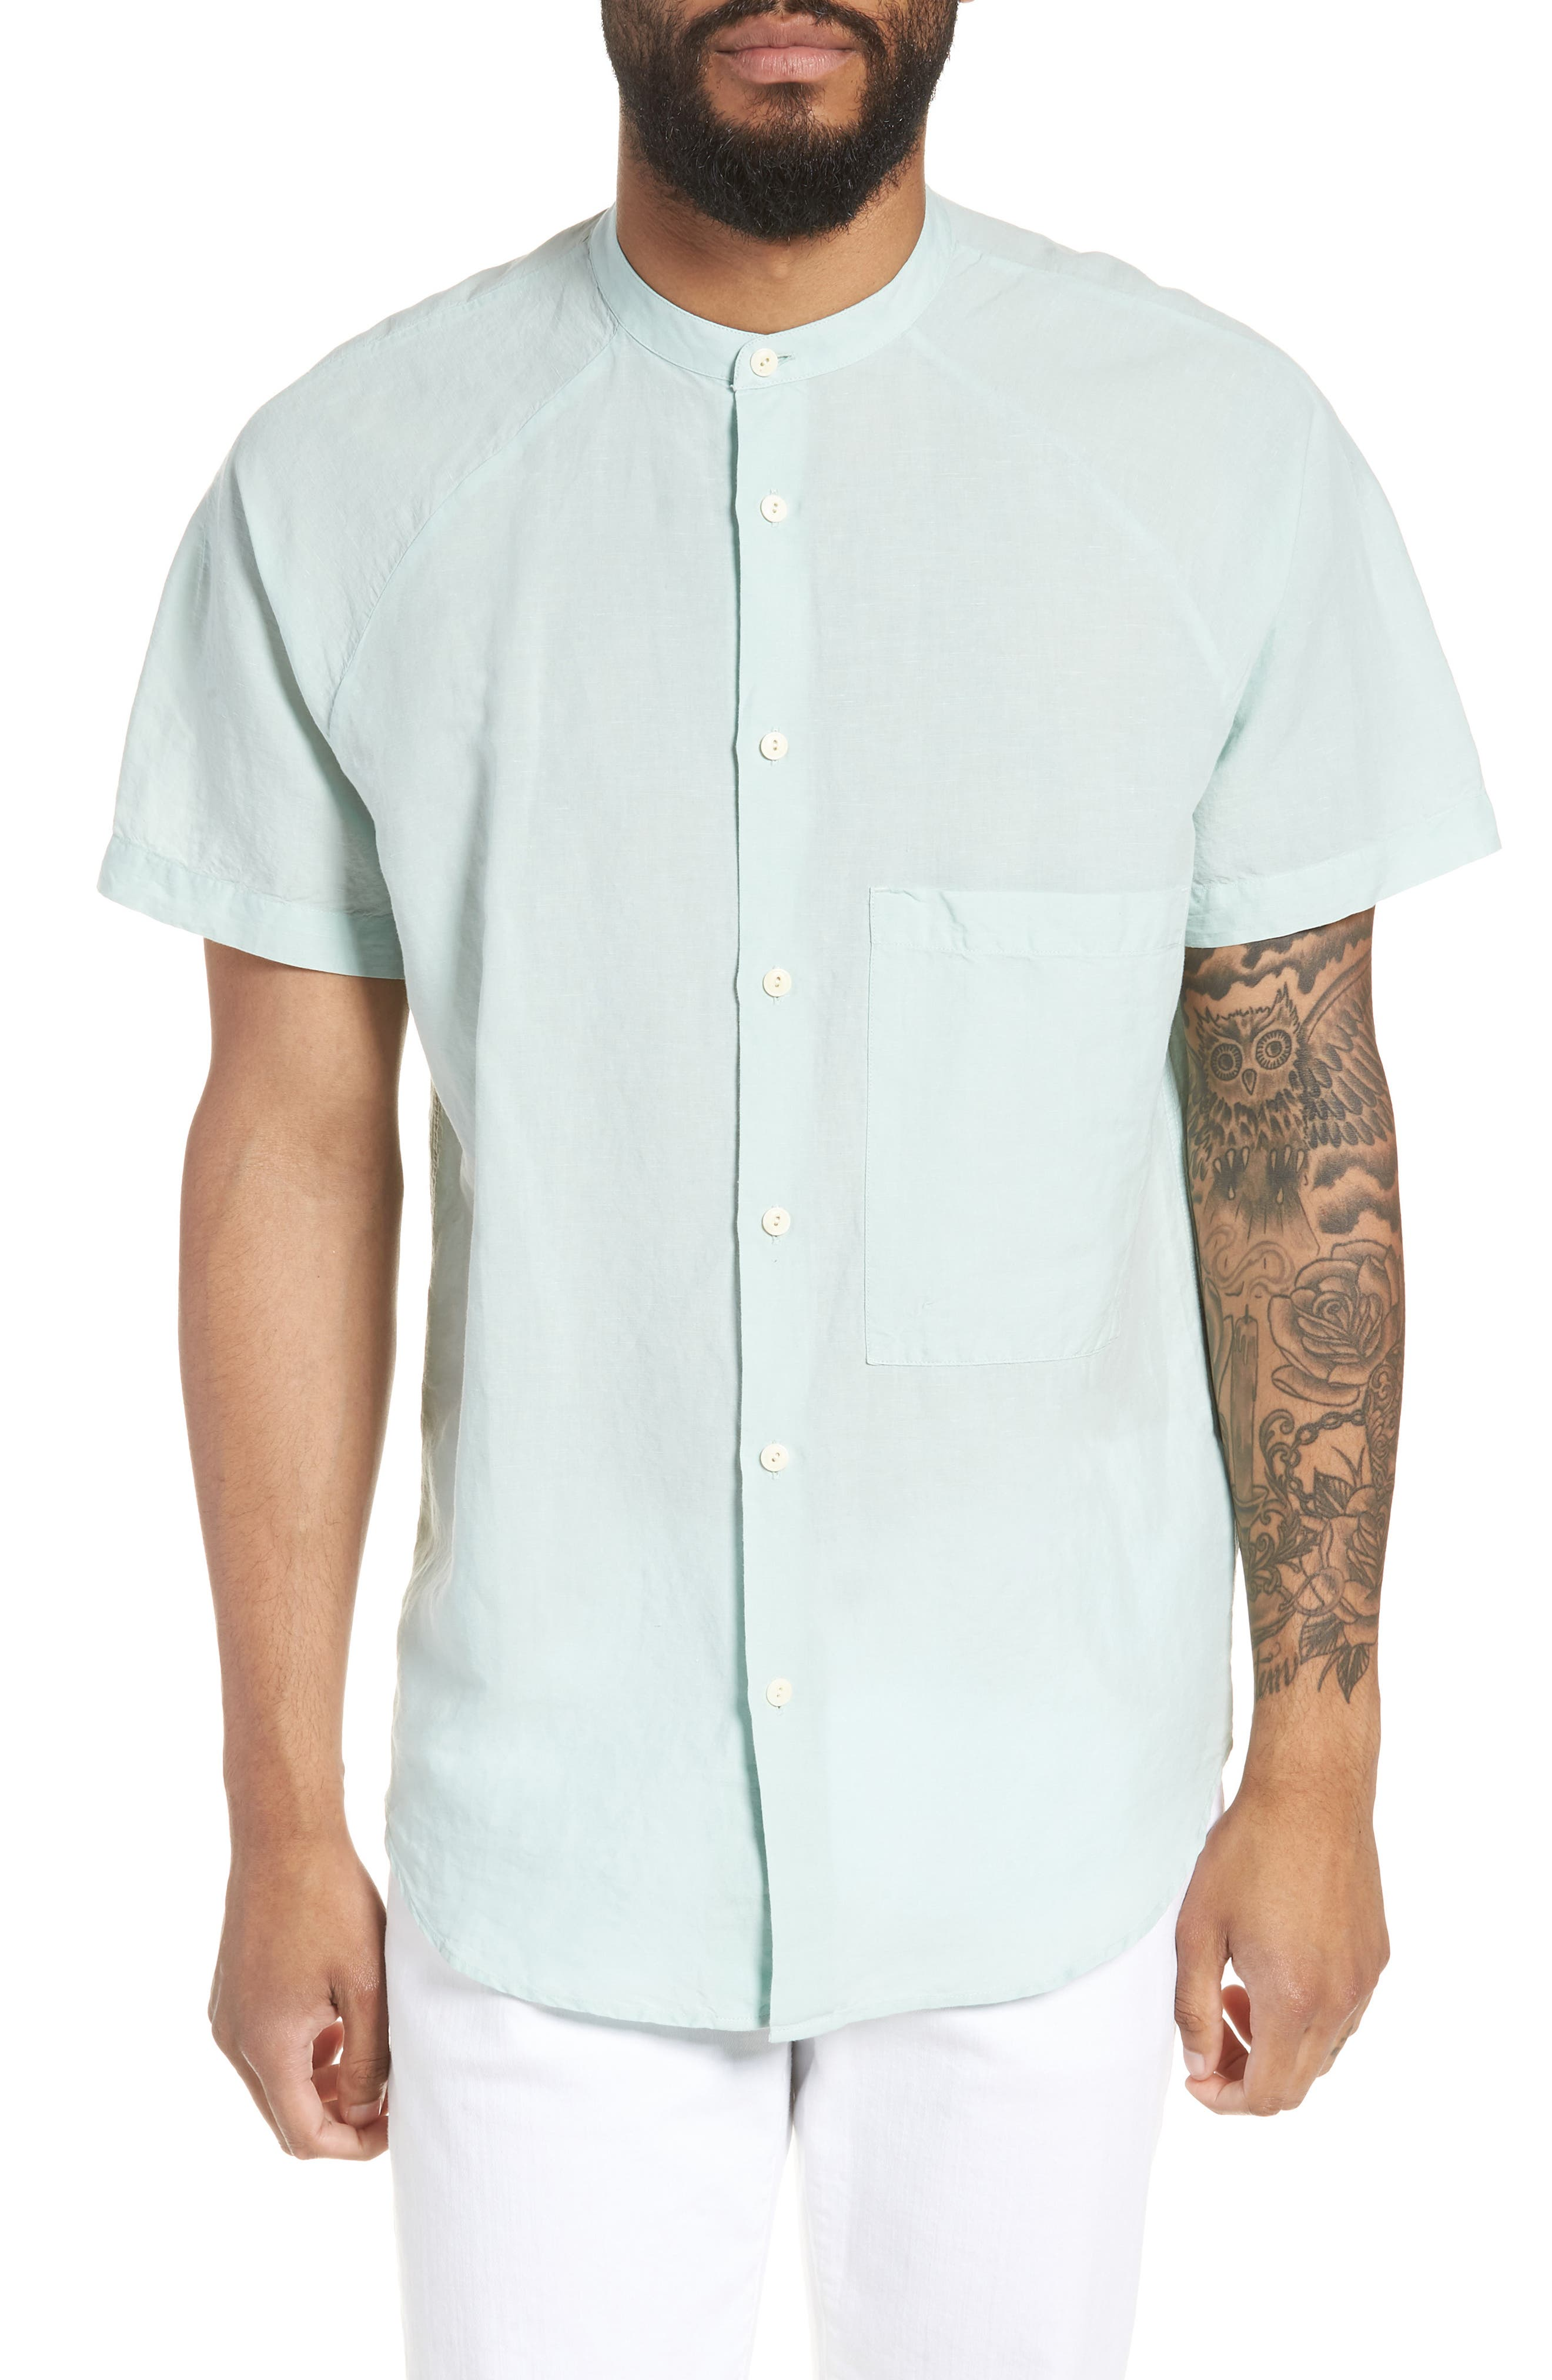 Sunday Slim Fit Shirt,                         Main,                         color,